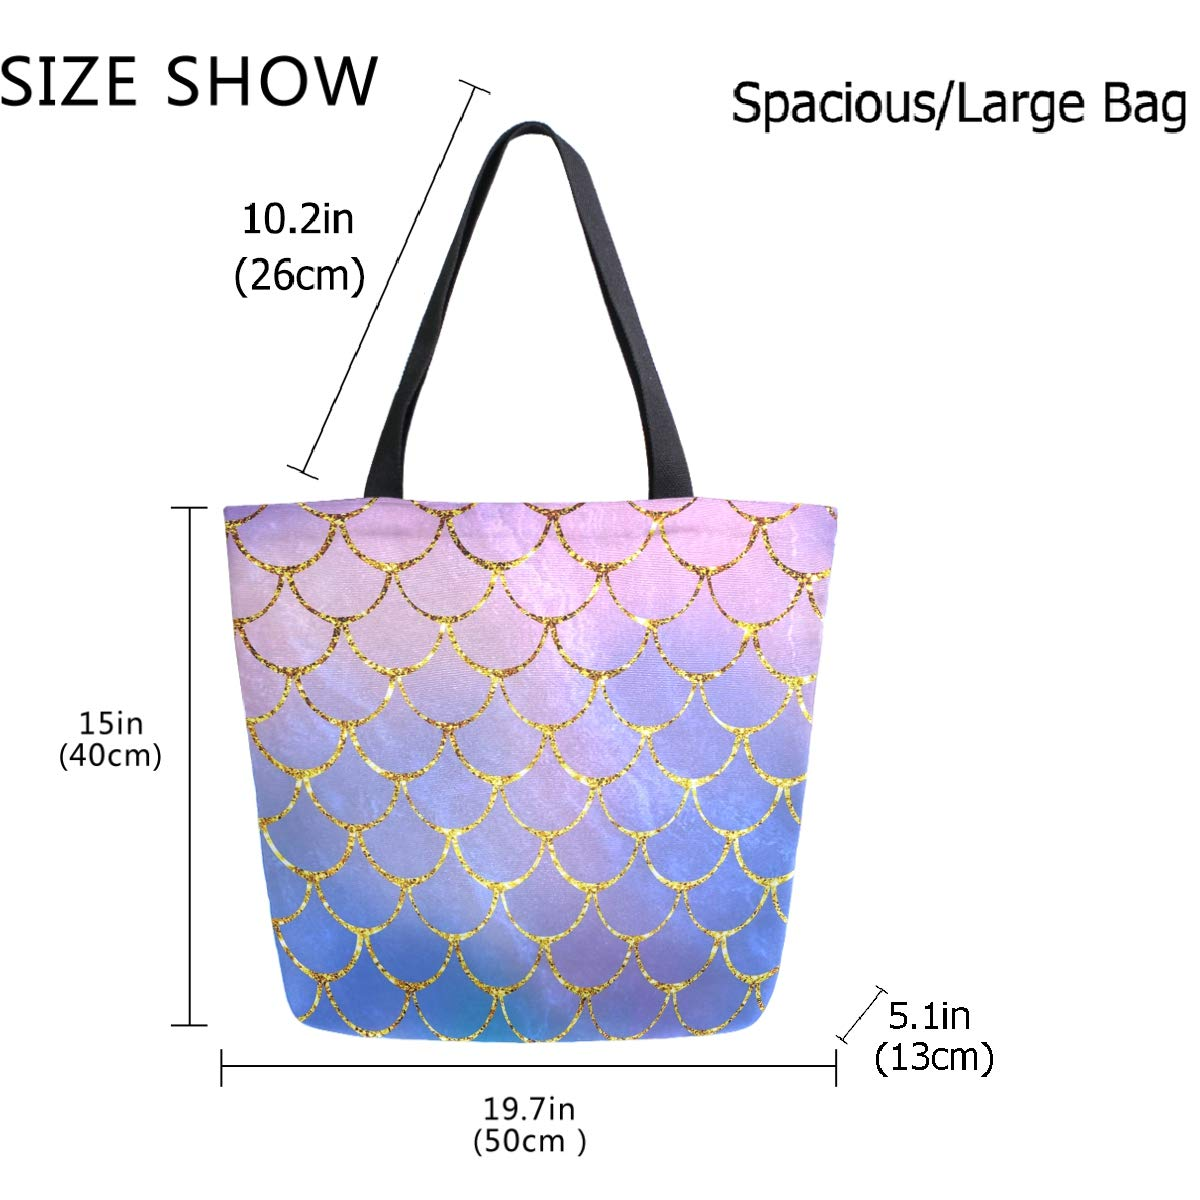 ZzWwR Ethnic Circles Floral Pattern Large Canvas Shoulder Tote Top Handle Bag for Gym Beach Travel Shopping